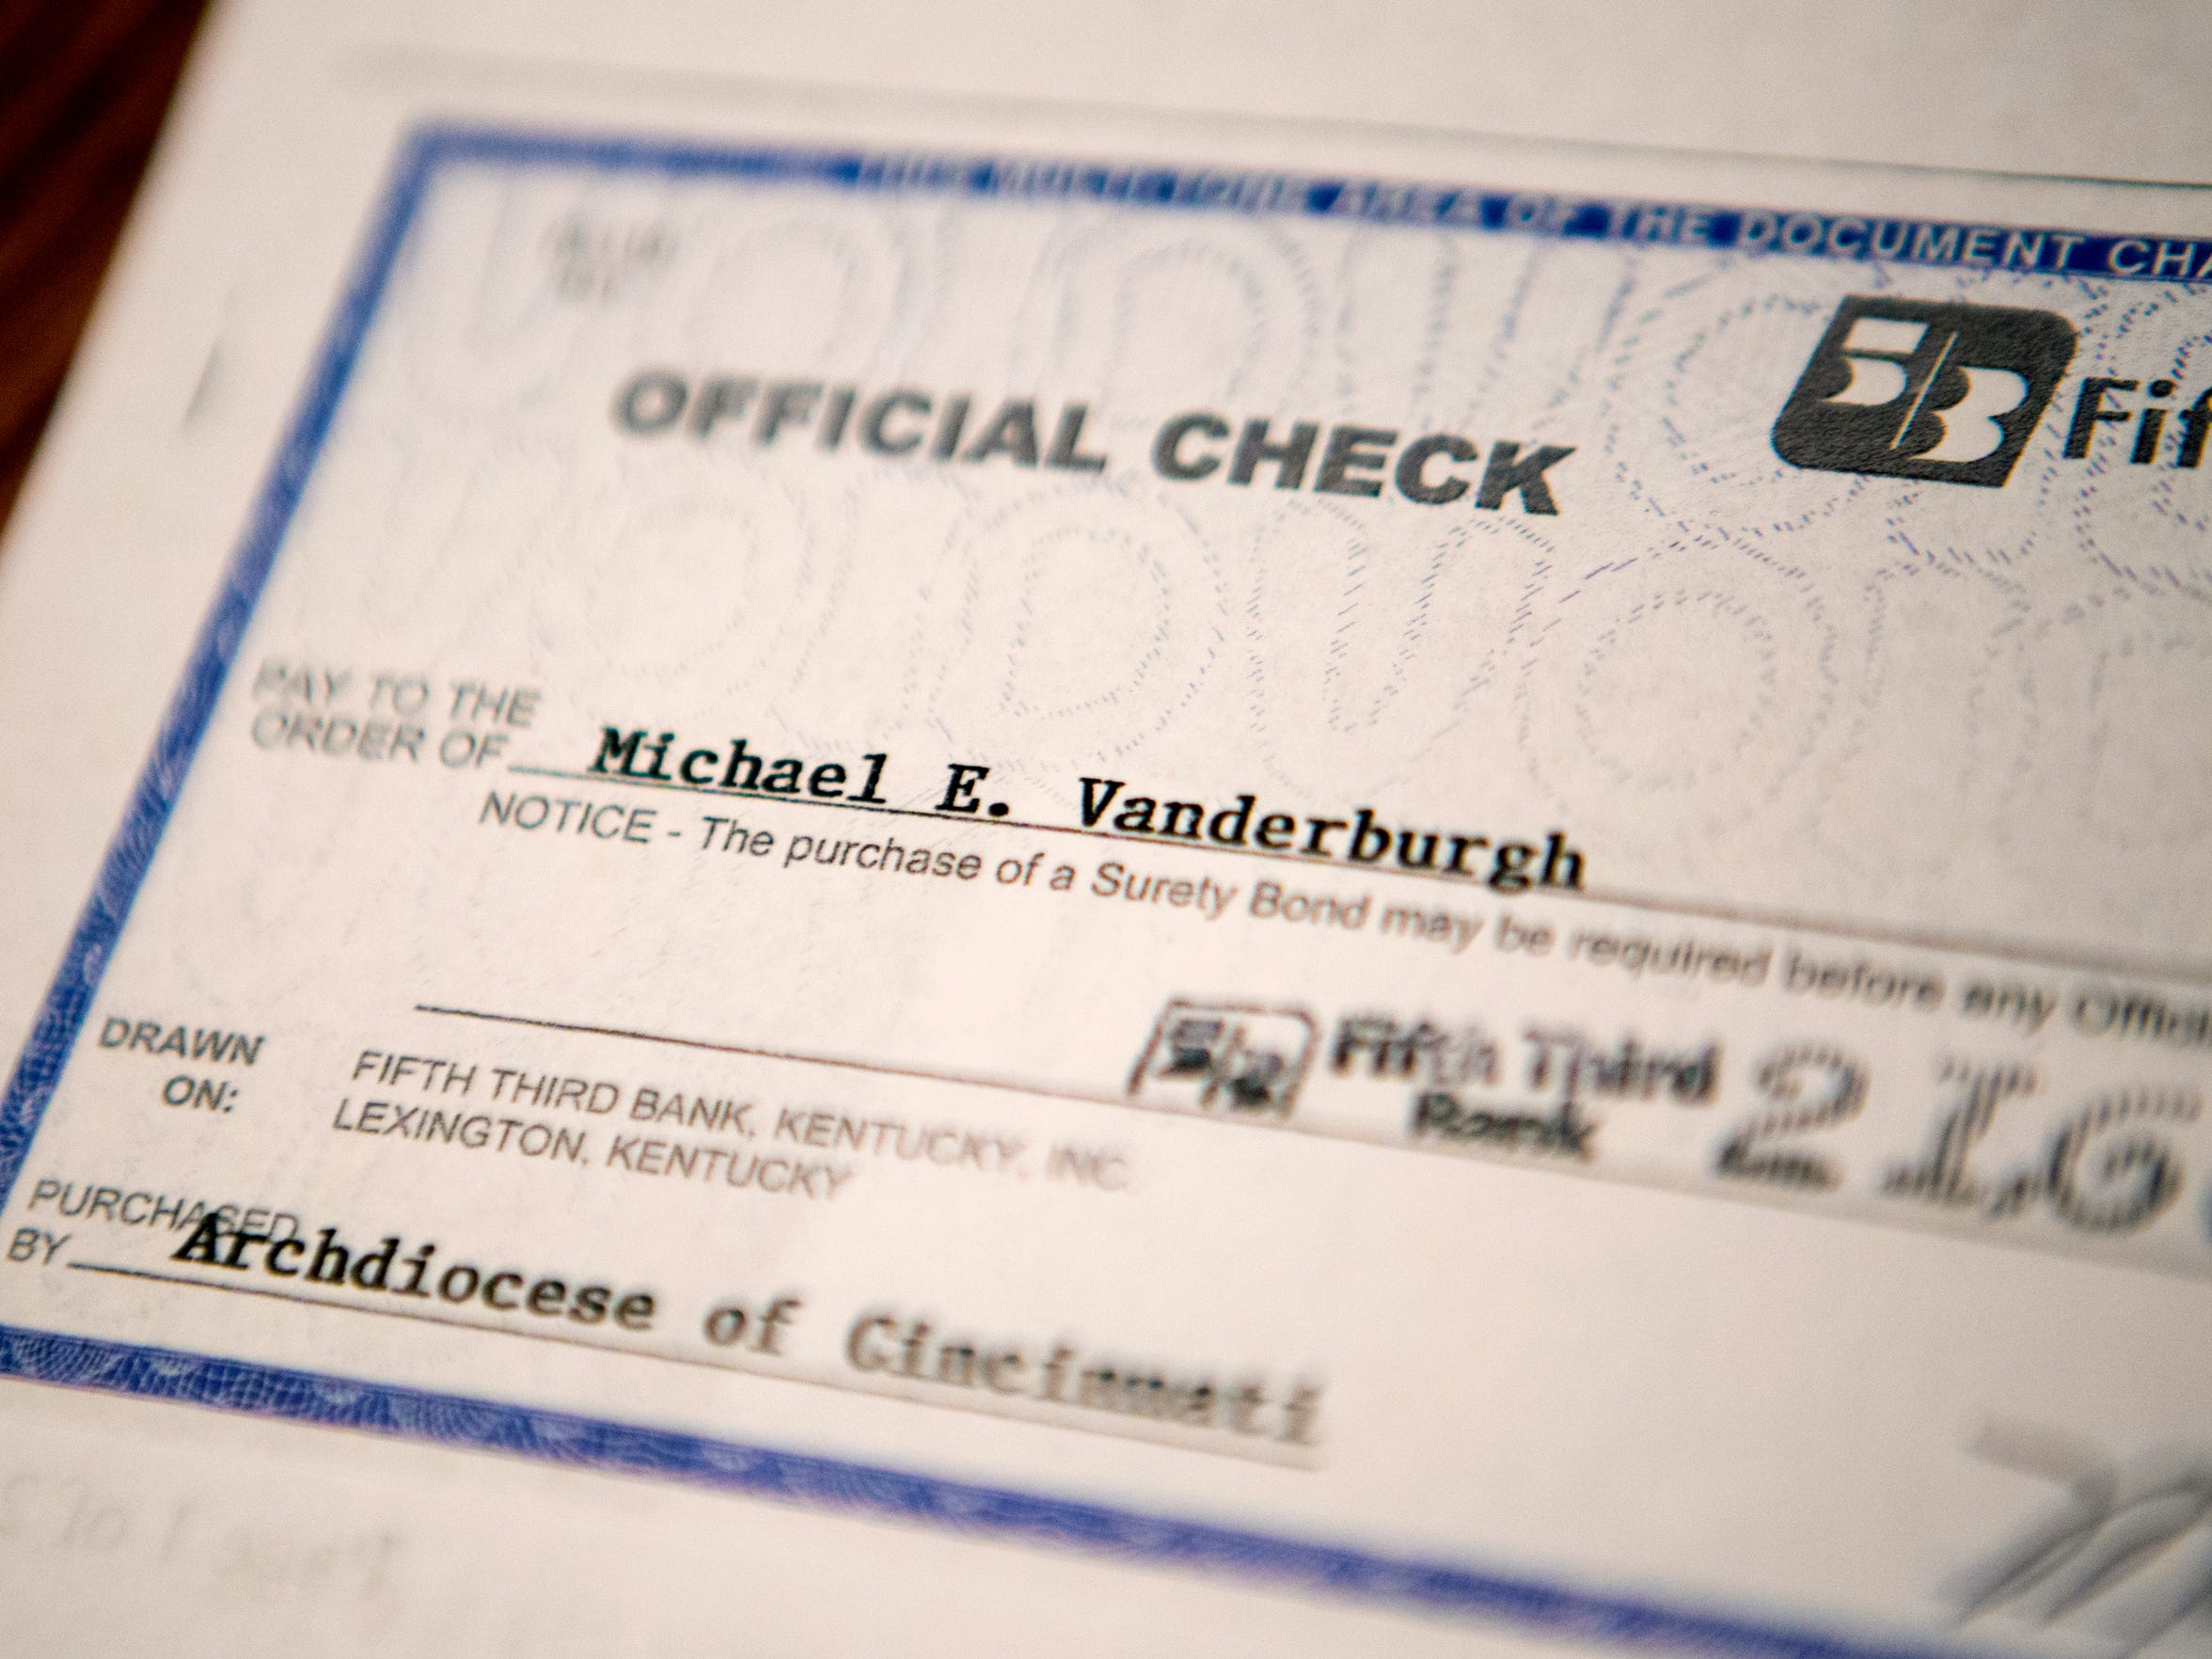 Michael keeps a copy of the check he received from